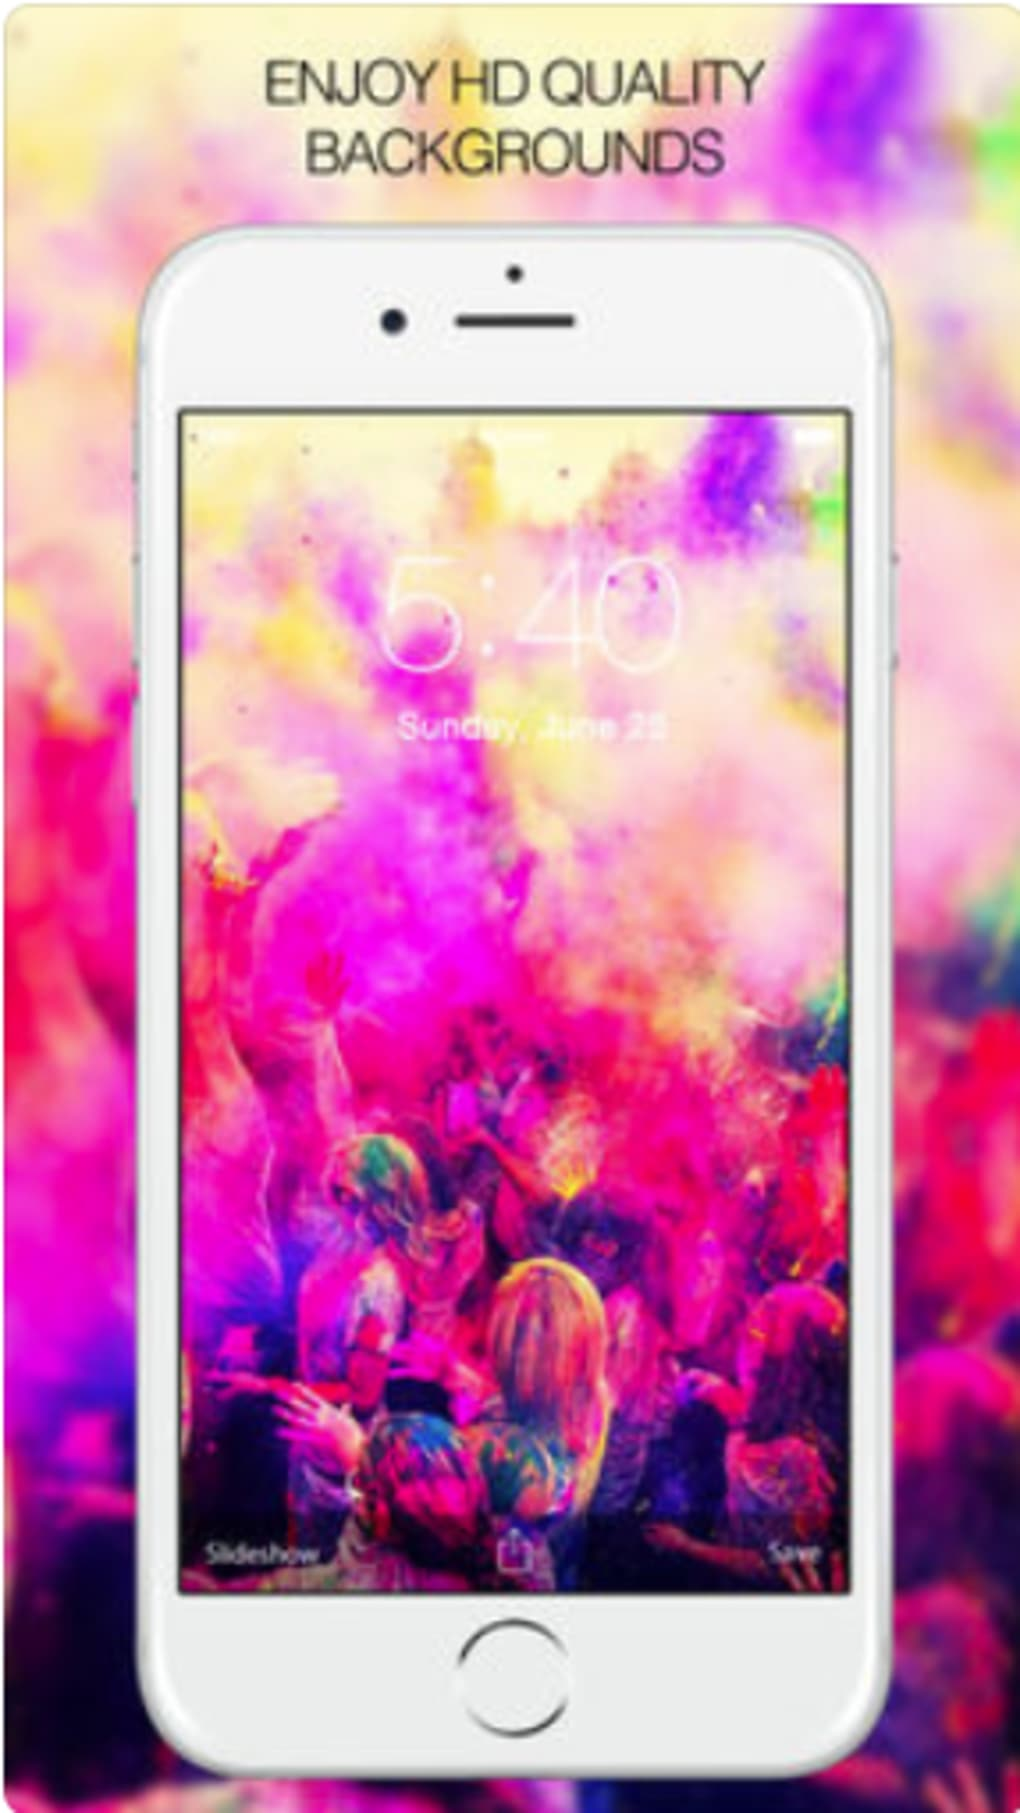 Happy Holi Holi Wallpapers Holi Images   Holi Png Background Hd 1020x1813